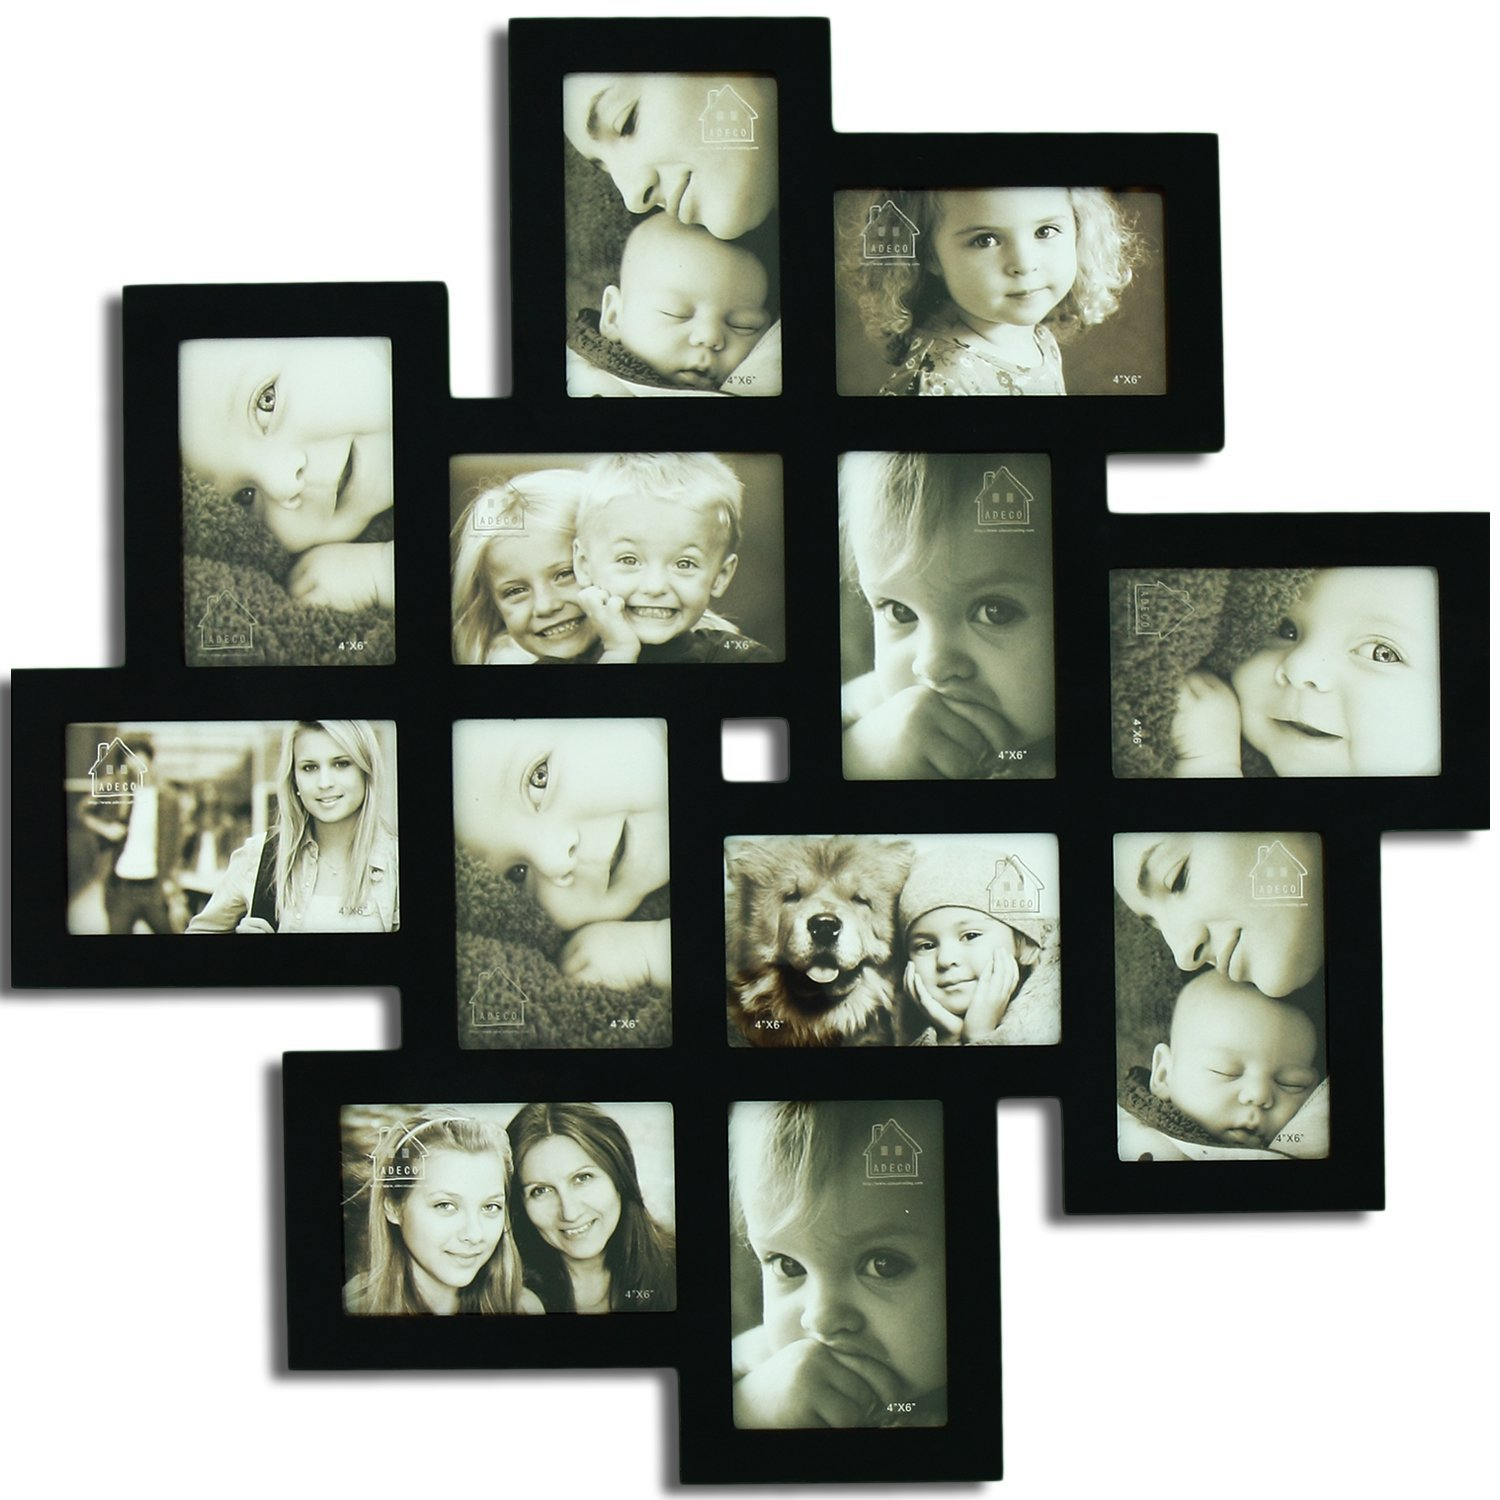 custom made collage picture frames images craft decoration ideas custom made collage picture frames choice image - Multiple Photos In One Frame